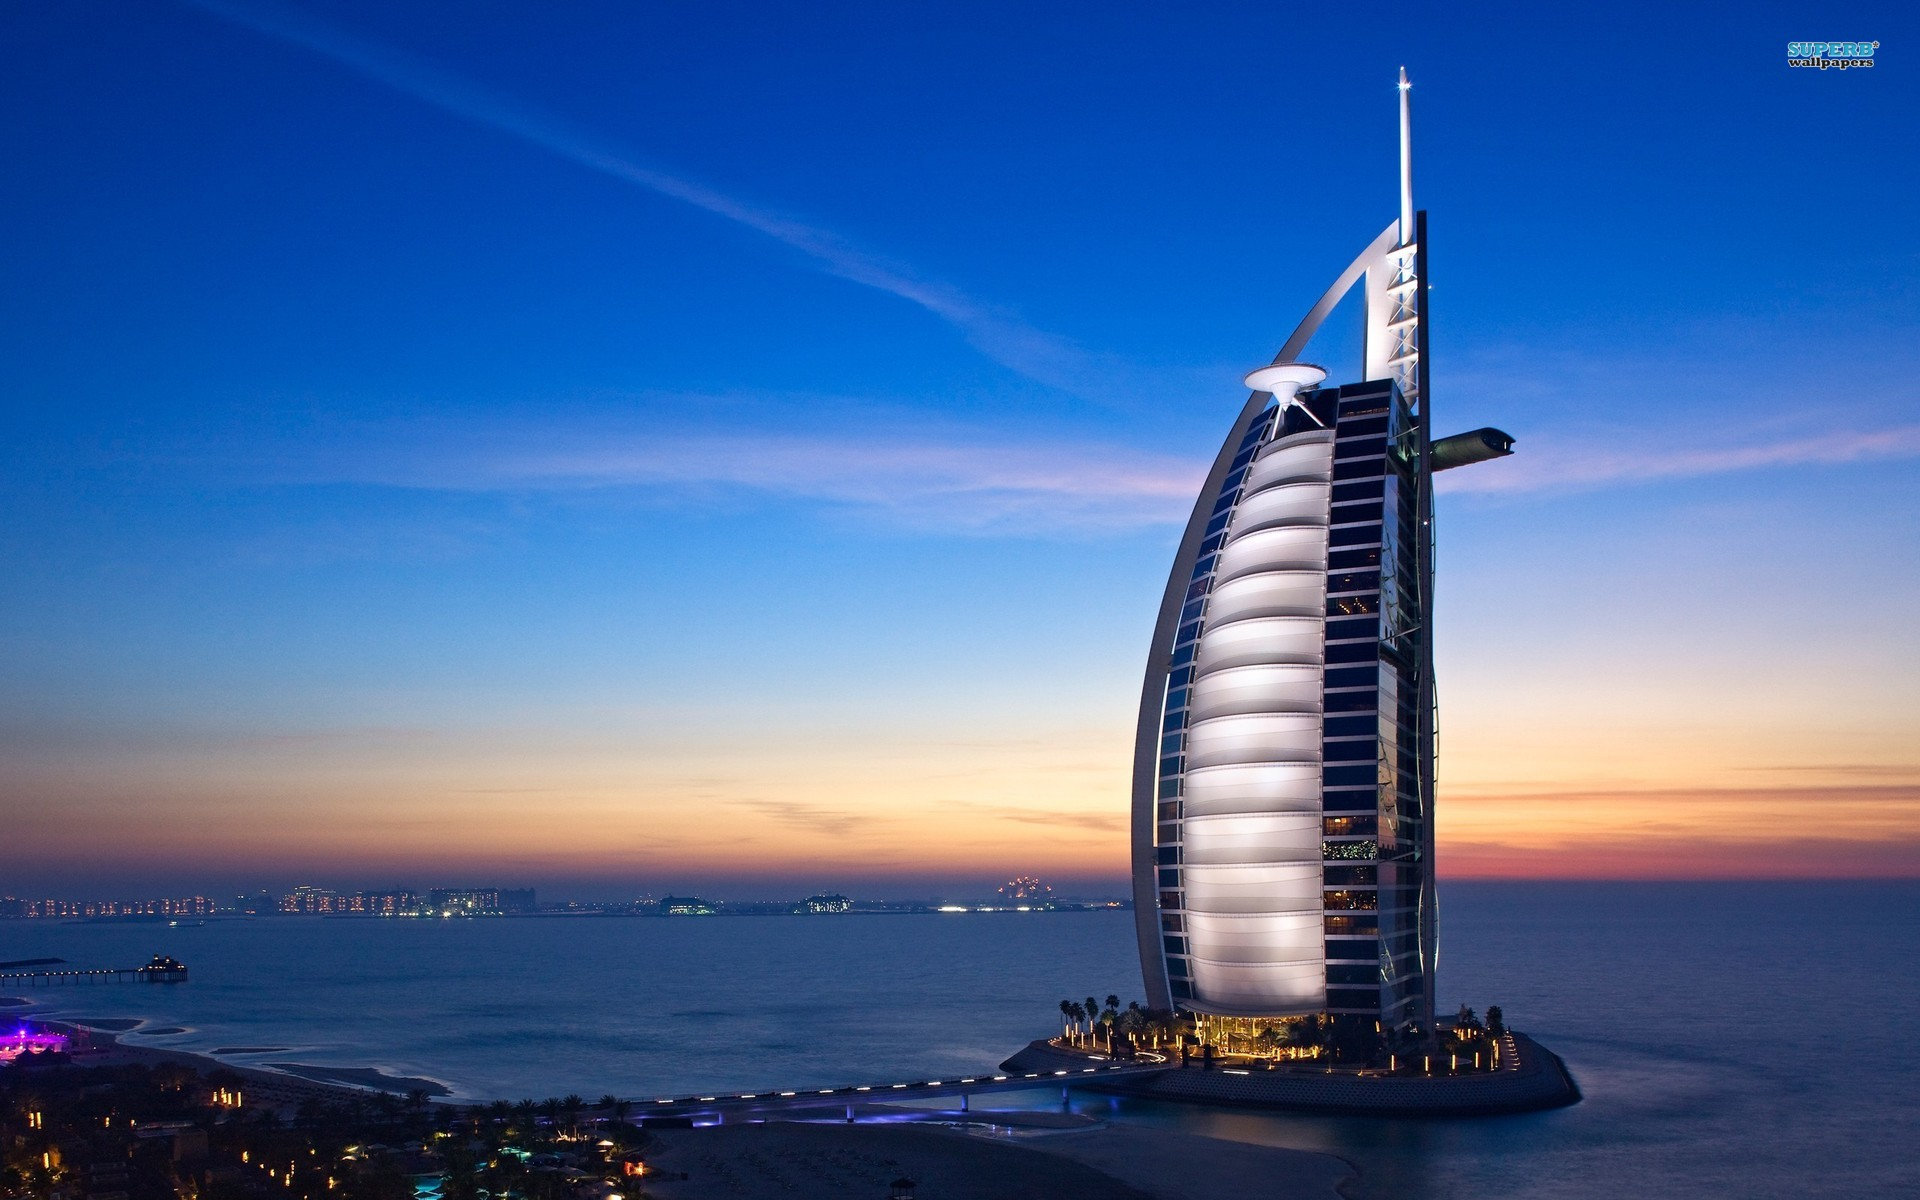 Burj al arab hotel dubai wallpapers burj al arab hotel for Hotel burj al arab